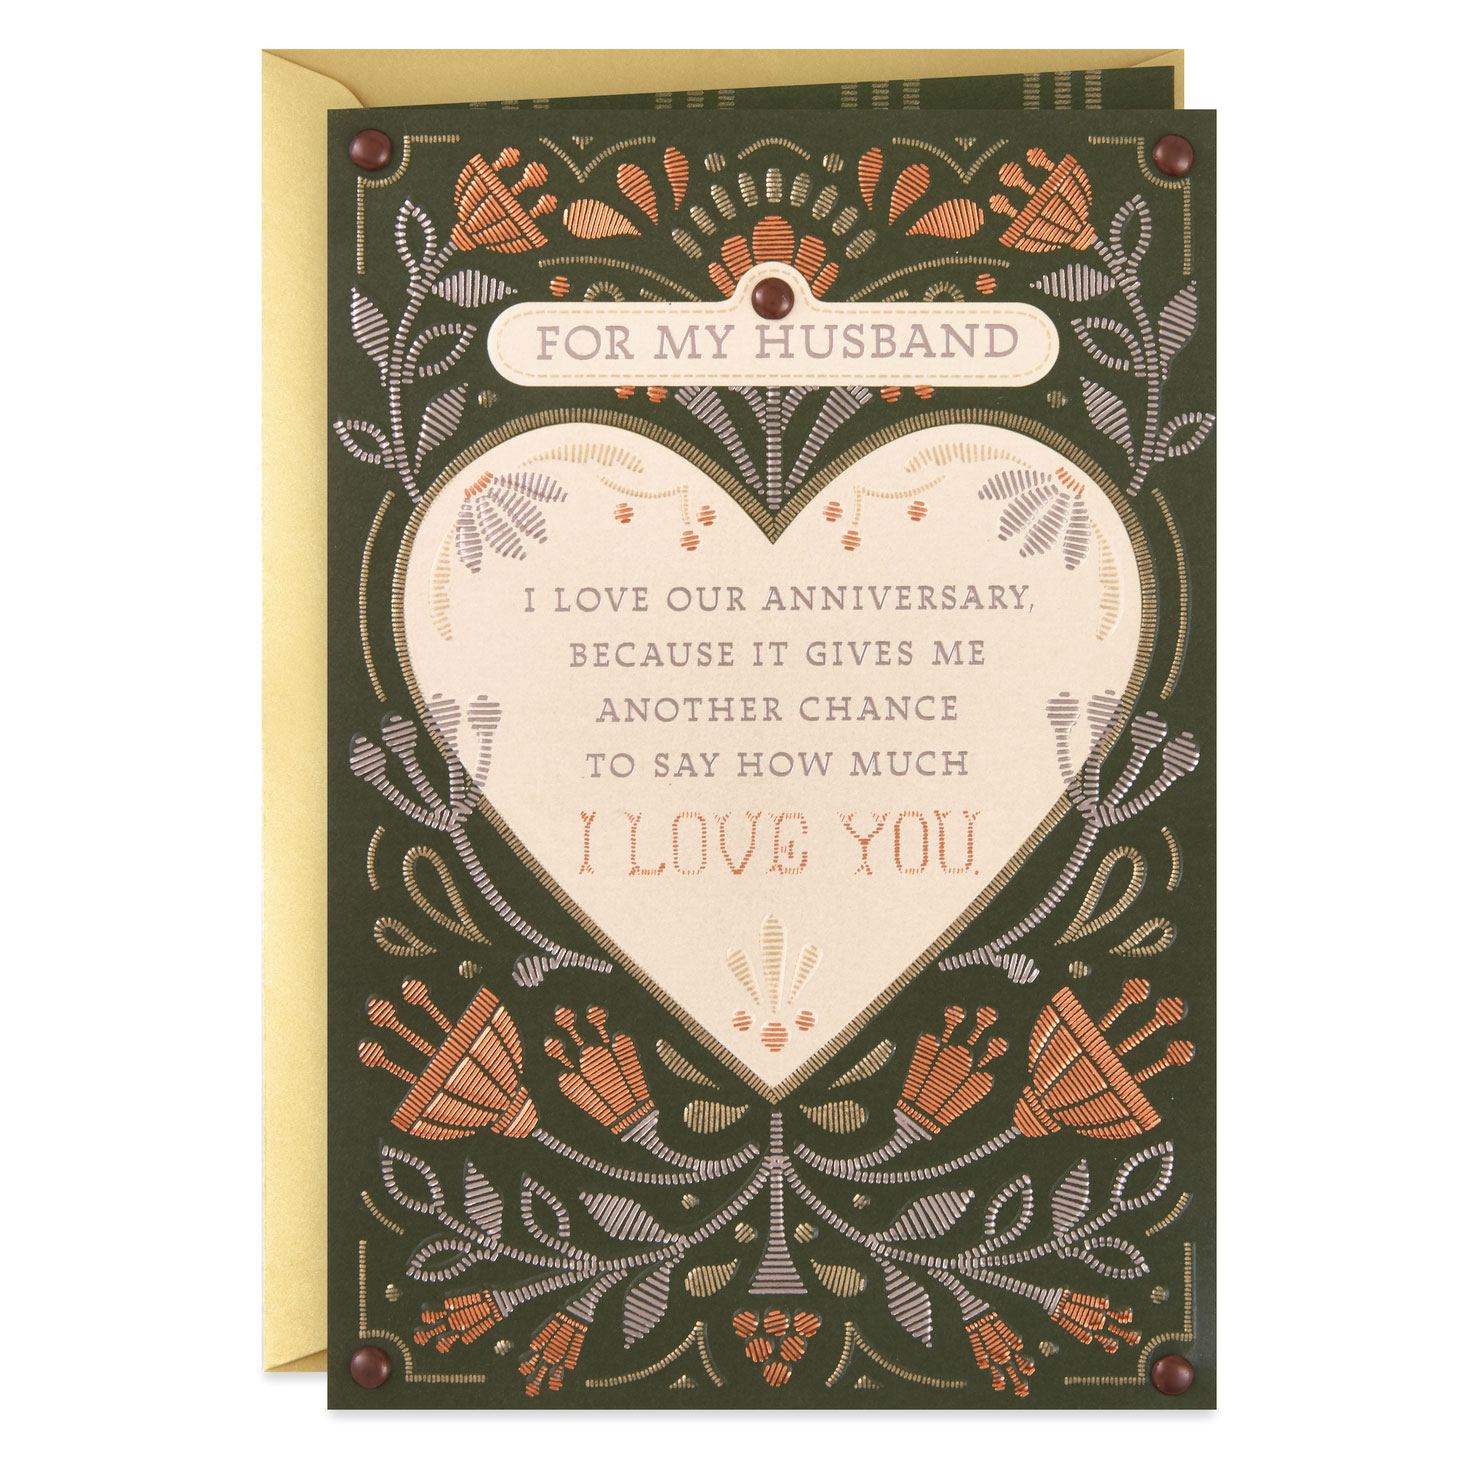 Another Chance to Say How Much I Love You Anniversary Card ...